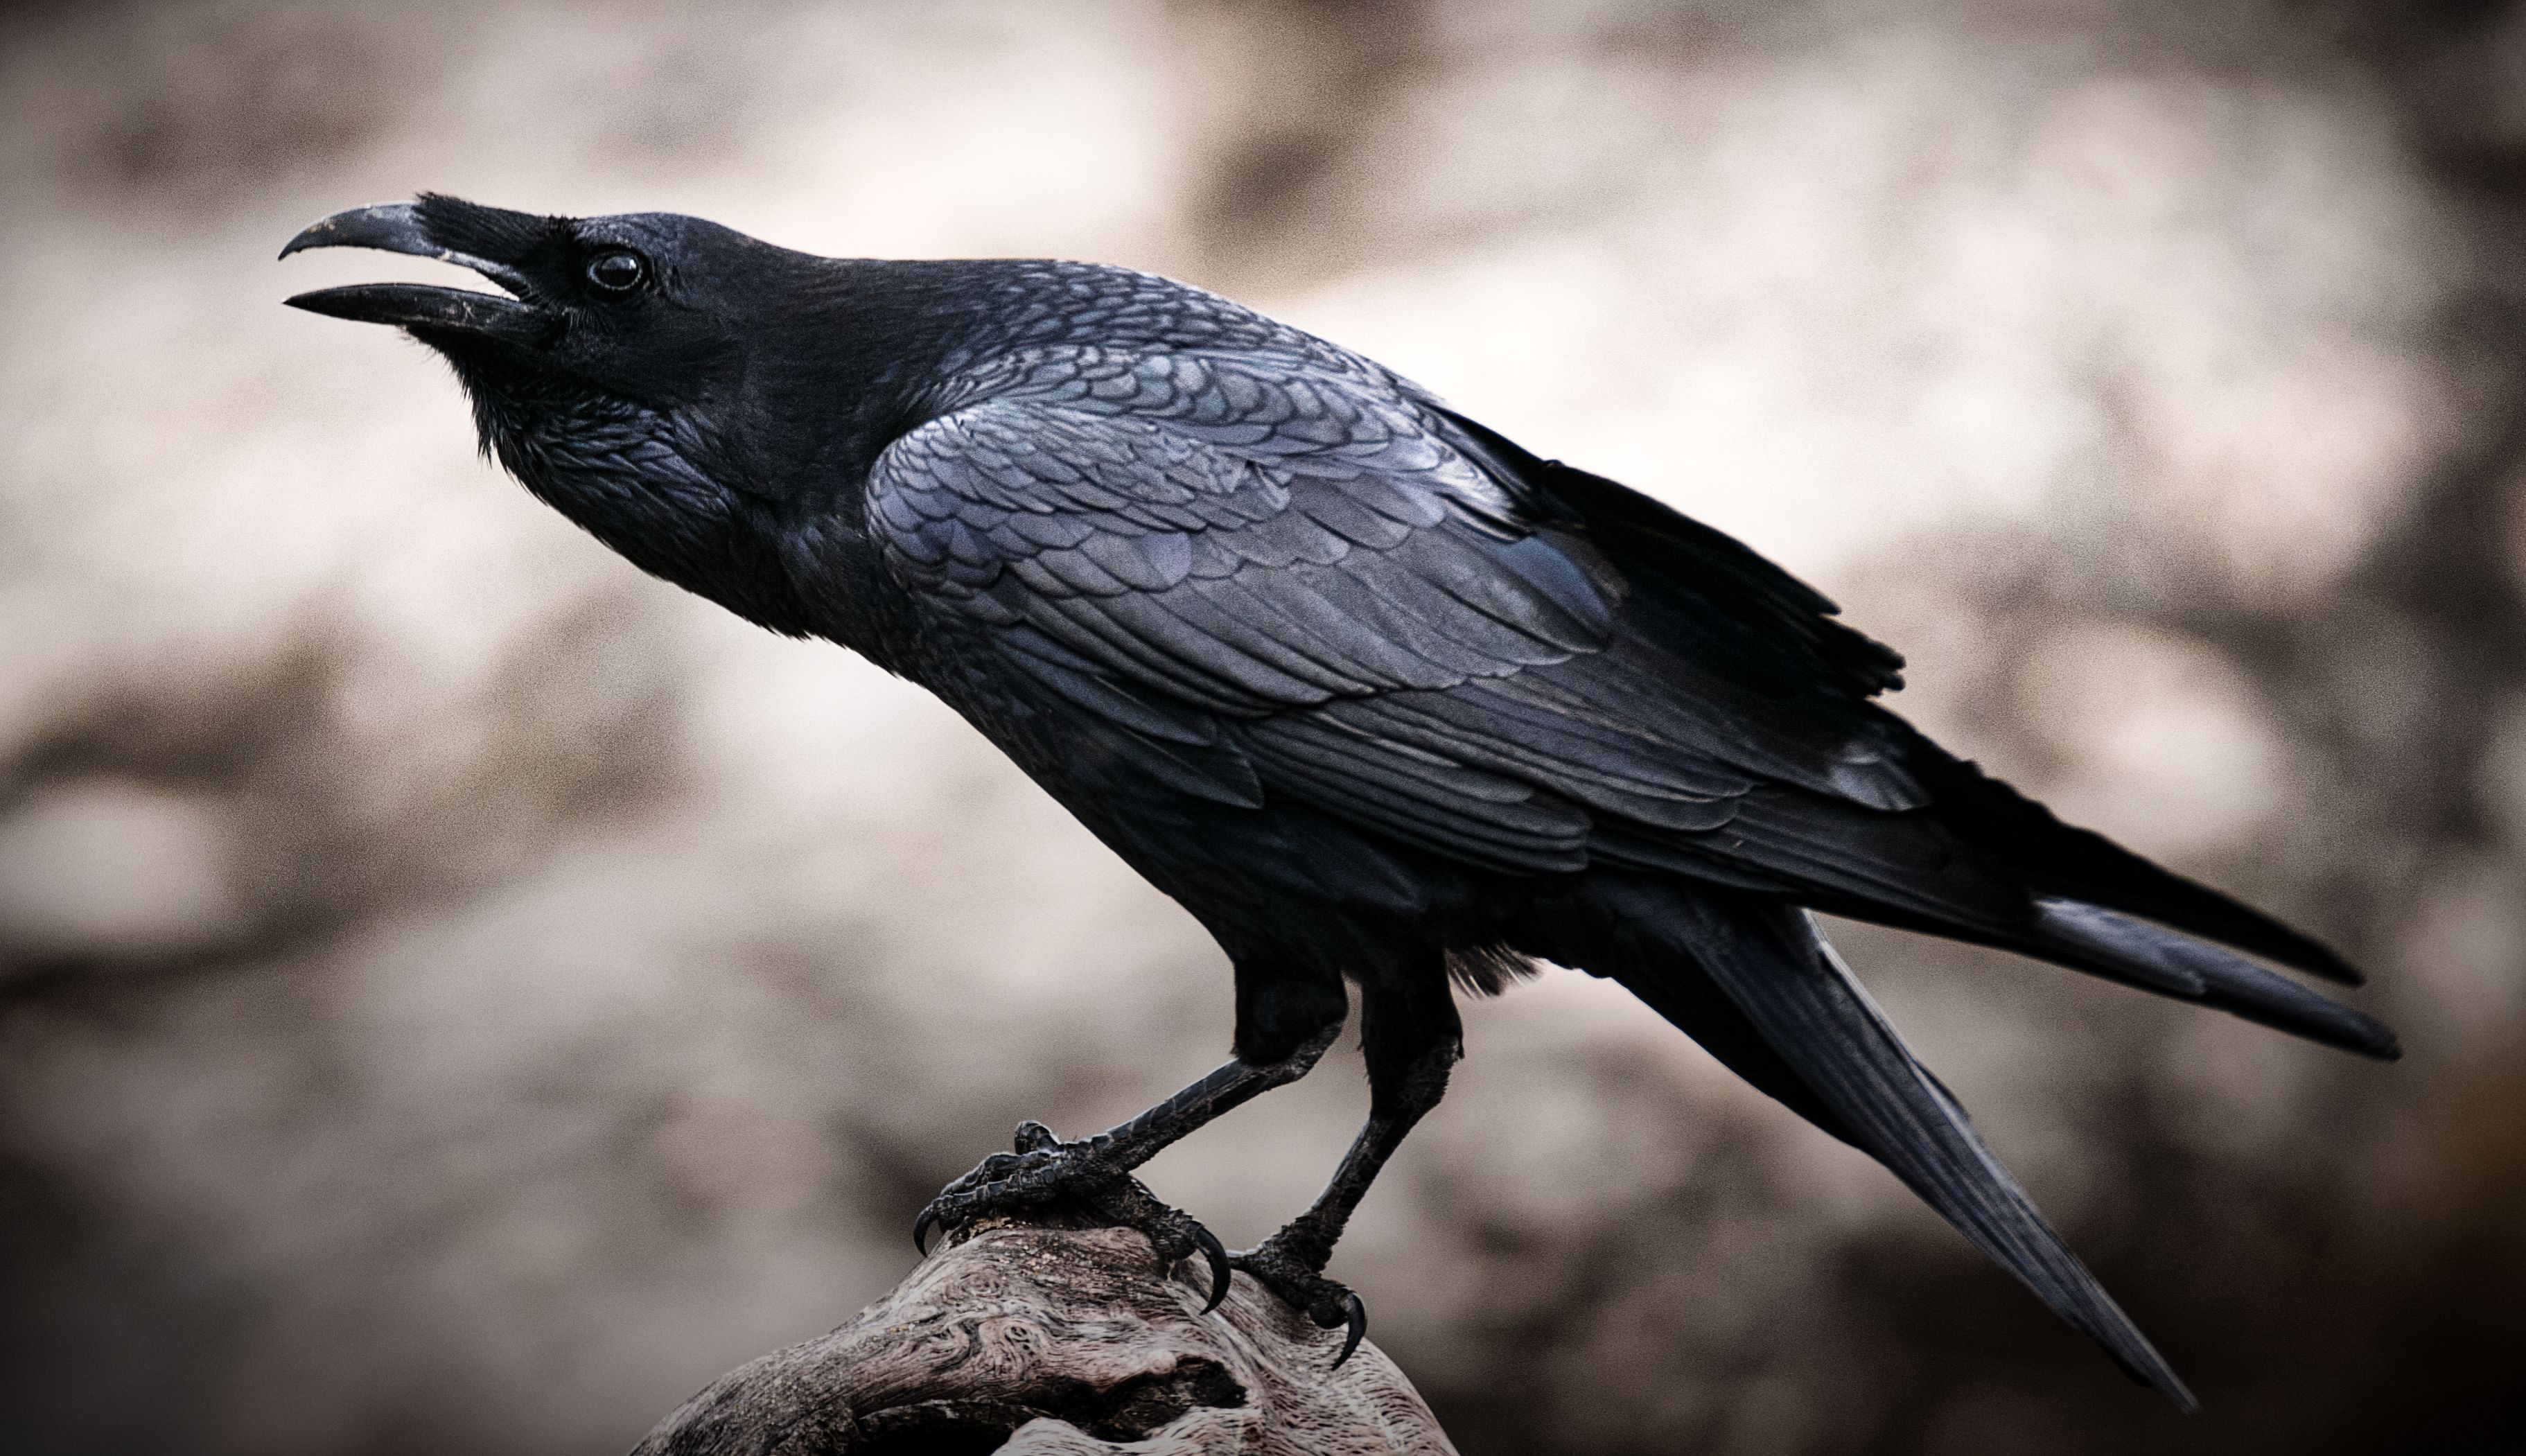 Raven - Corvus corax,   portrait and social behavior